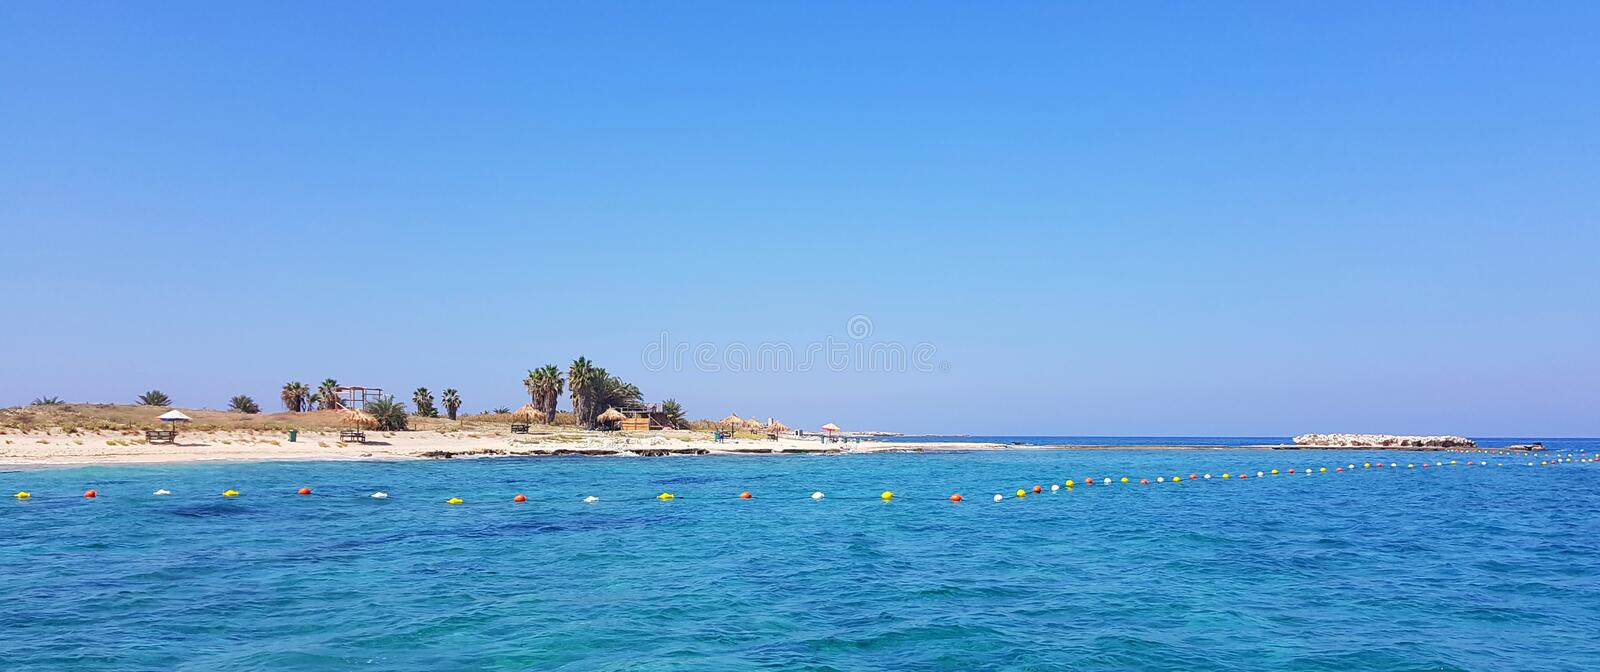 Arriving at Palm Island. Located a half hour ride from the port of Tripoli Lebanon stock images